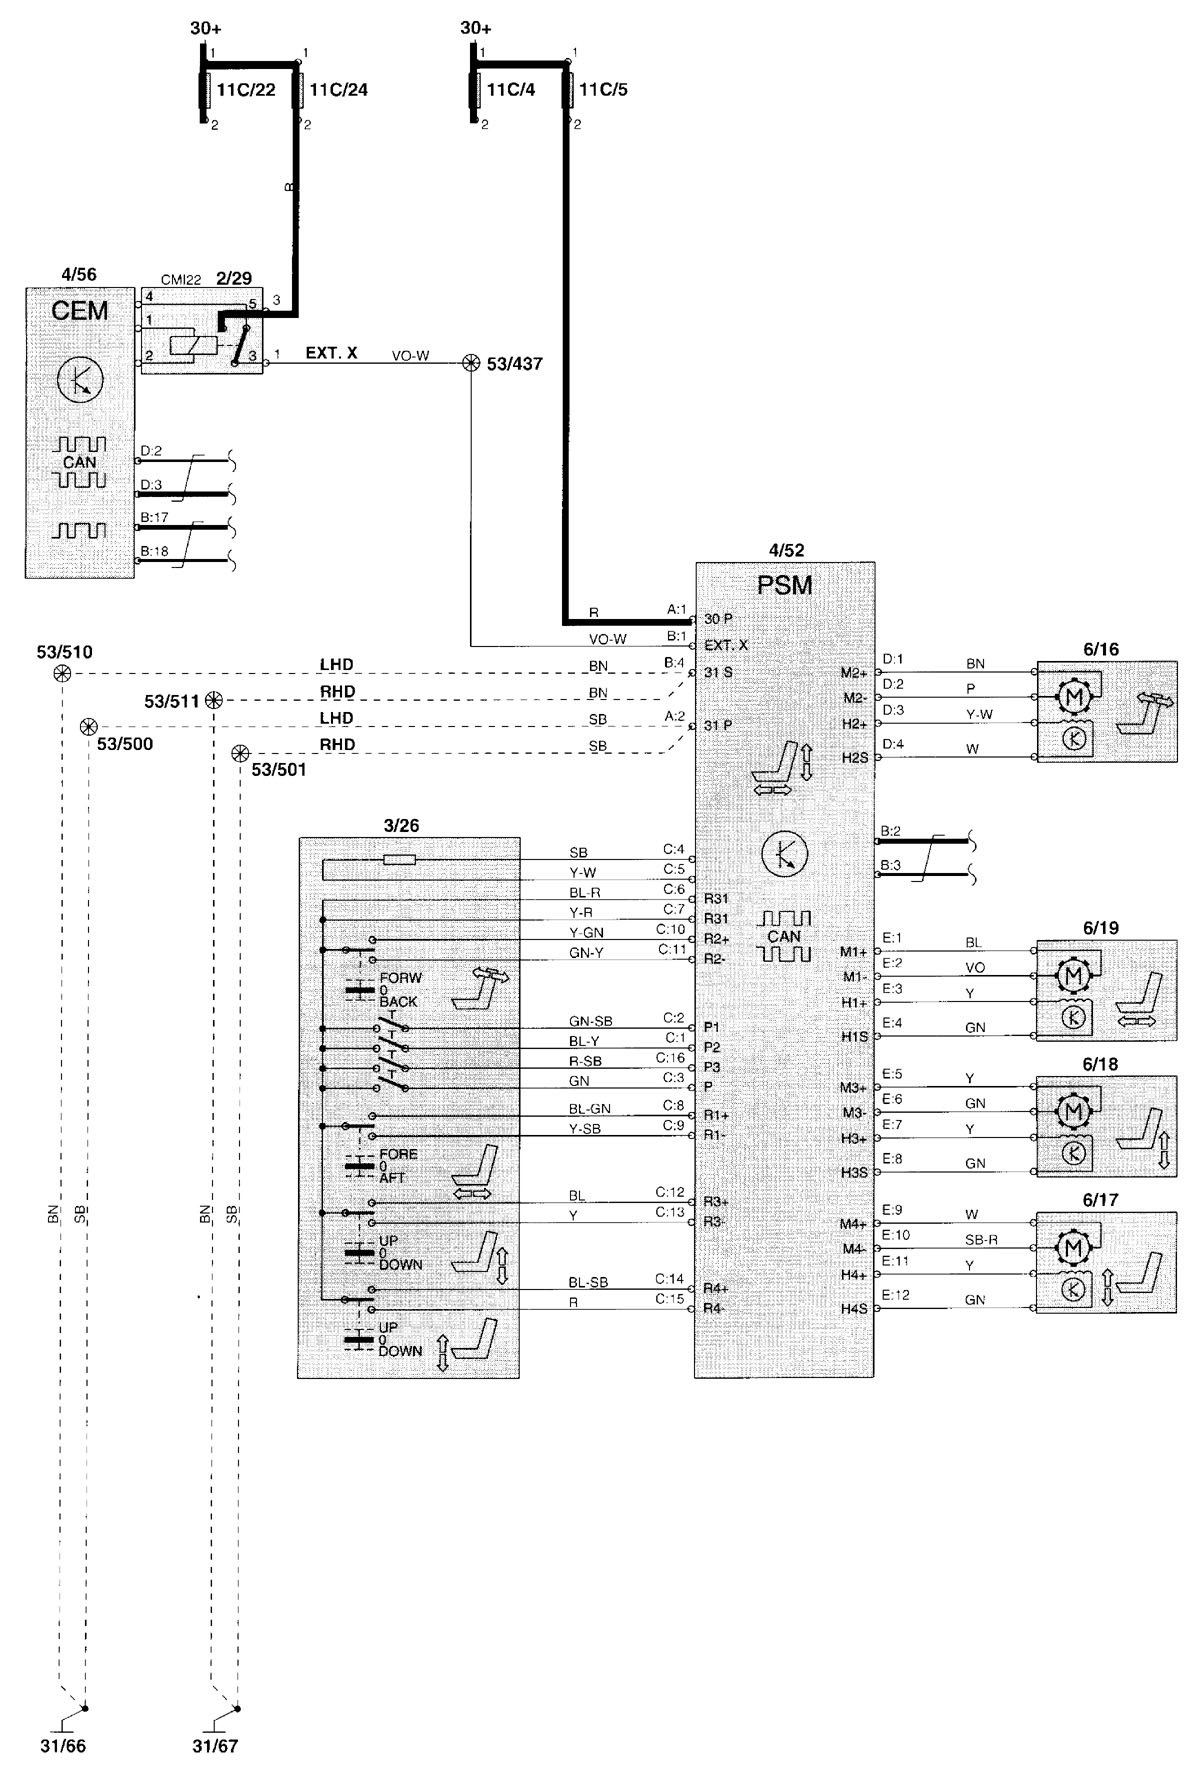 DIAGRAM] 2015 Volvo Xc70 Wiring Diagram FULL Version HD Quality Wiring  Diagram - BUILDMYDIAGRAM.FONTANA-LAURA.IT | Volvo Xc70 Trailer Wiring Diagram |  | Diagram Database - fontana-laura.it